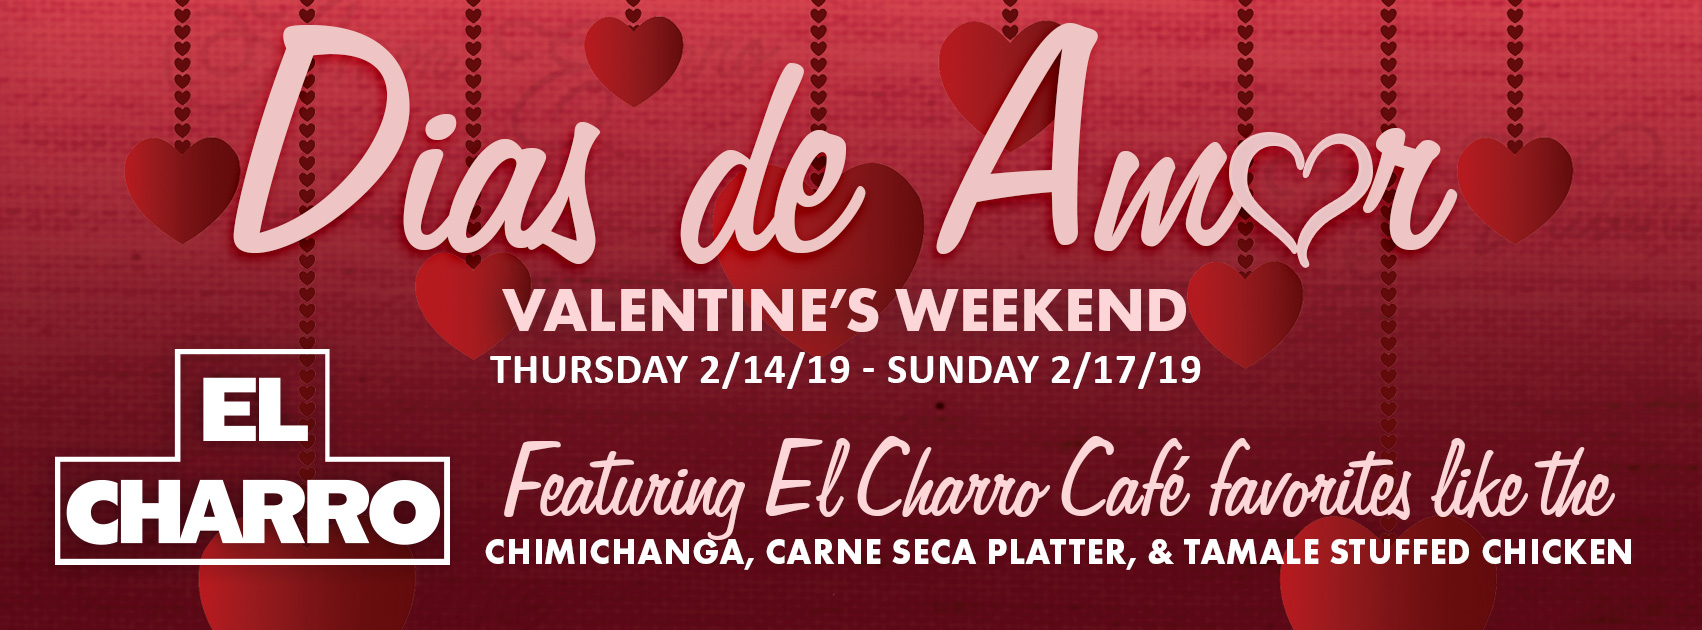 EC-Valentines-2019-FB-Page-Cover